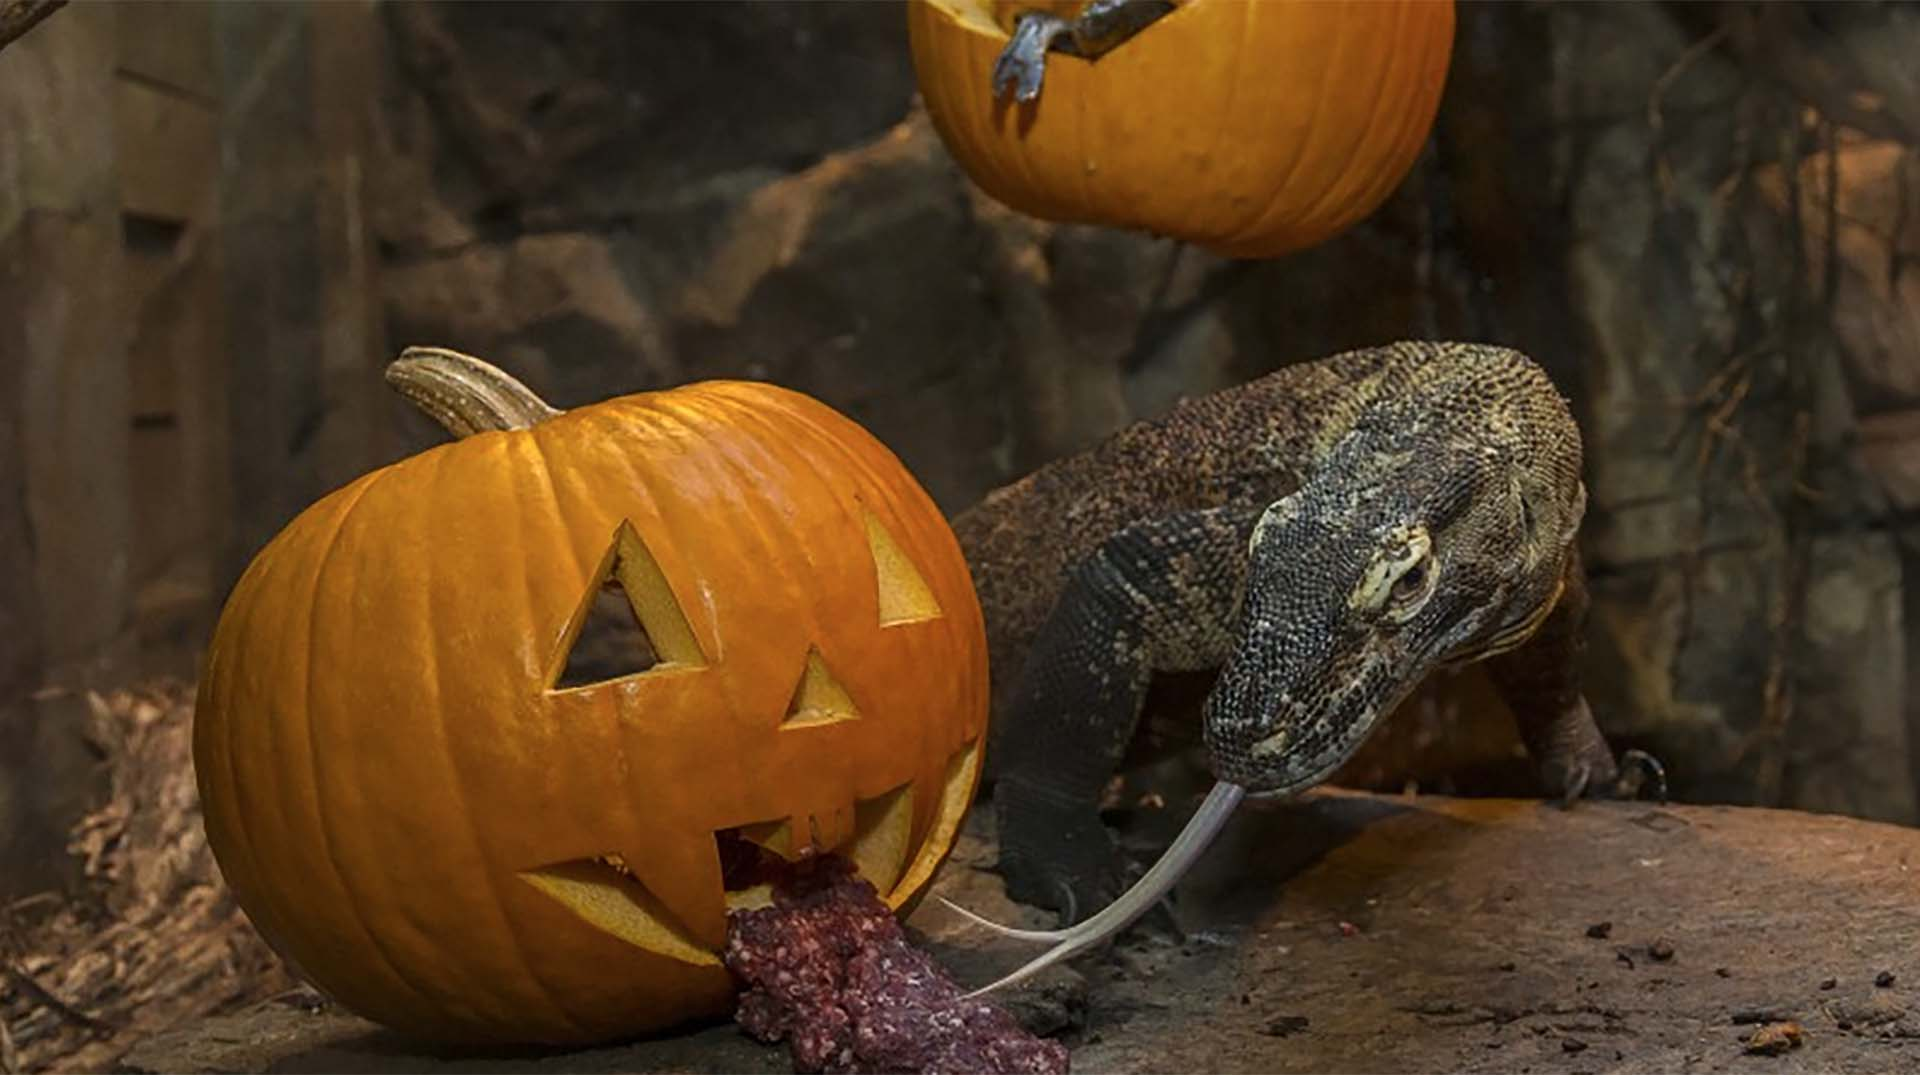 A Komodo dragon eating meet with its tongue out of a jack-o'-lantern.